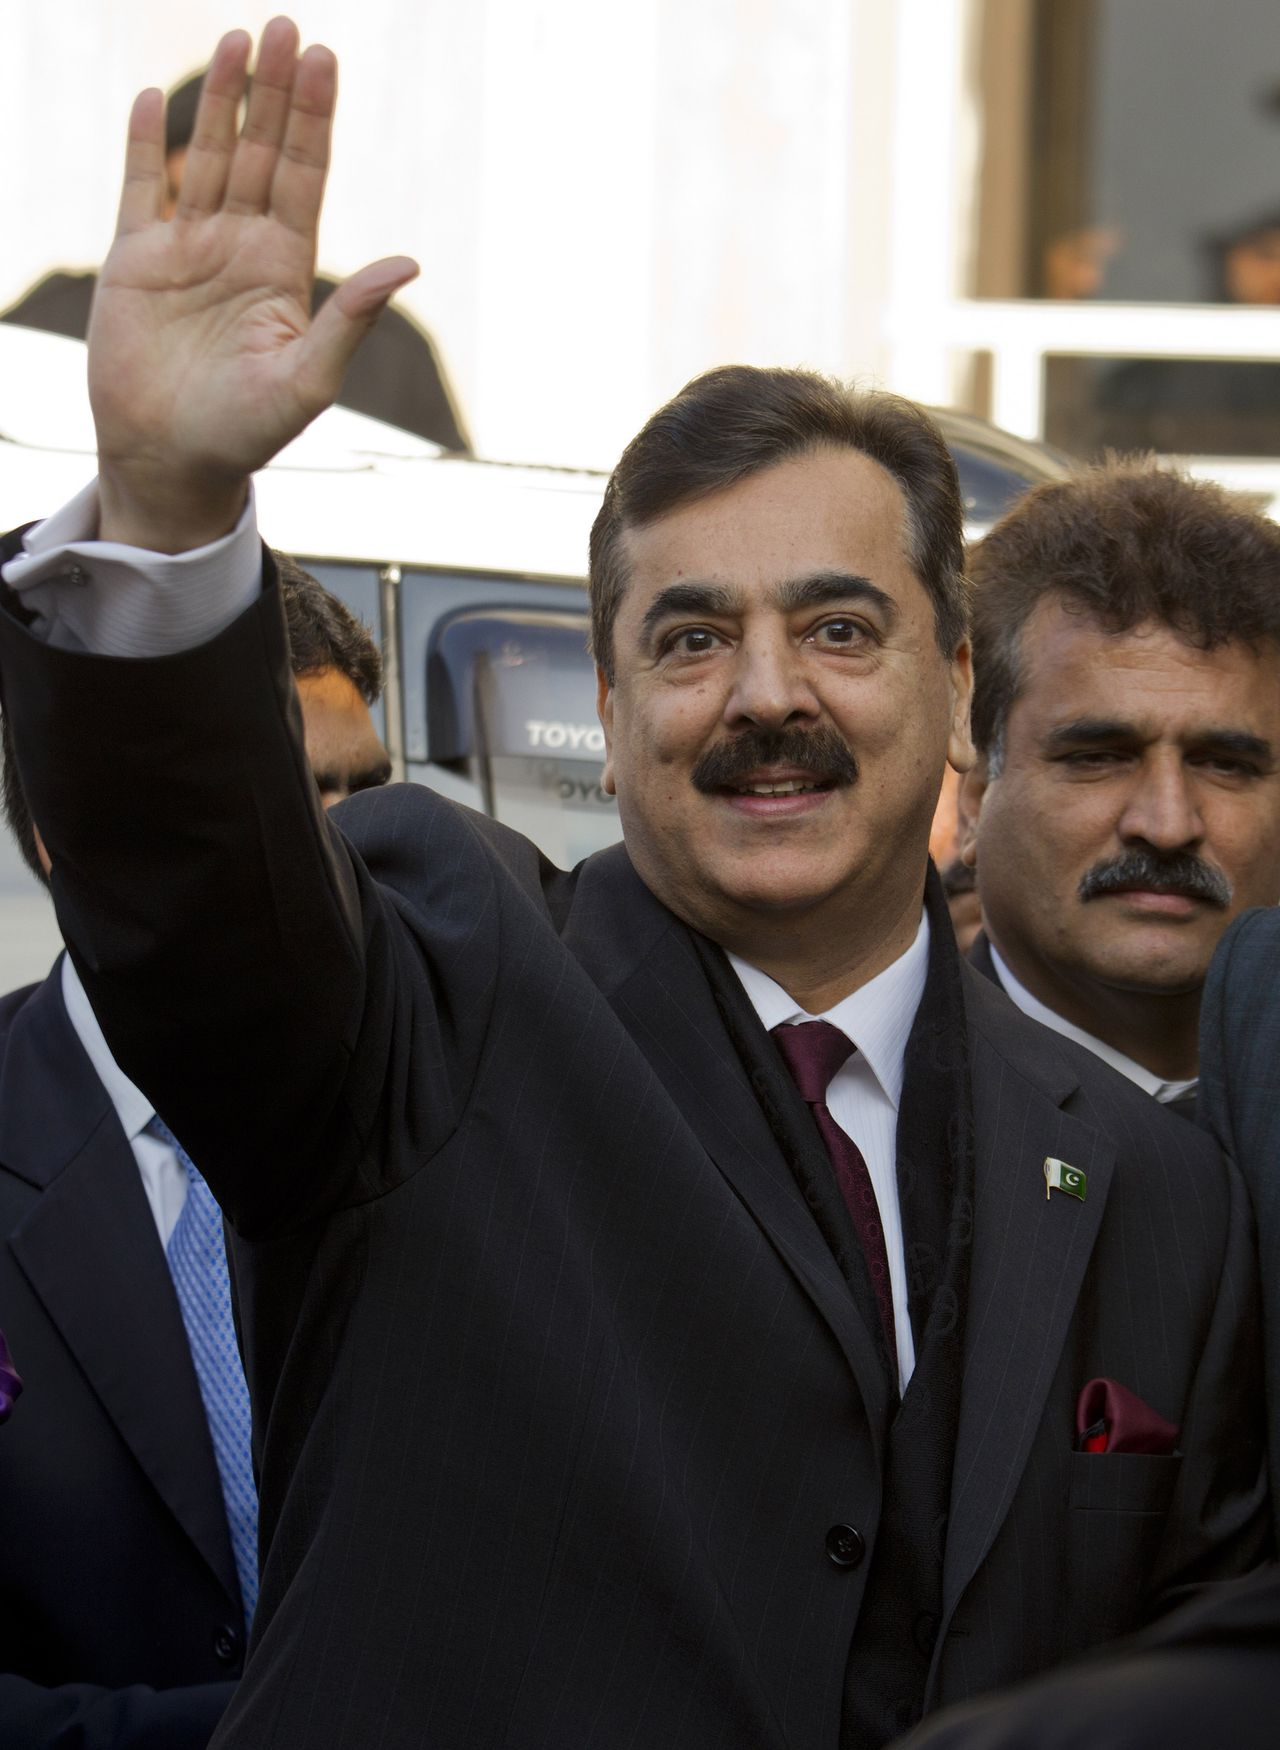 Pakistani Prime Minister Yousuf Raza Gilani waves upon his arrival at the Supreme Court in Islamabad, Pakistan on Thursday, Jan. 19, 2012. Pakistan's prime minister has made a rare appearance before the Supreme Court in attempt to avoid being held in contempt for refusing to reopen an old corruption case against the president. (AP Photo.B.K.Bangash)